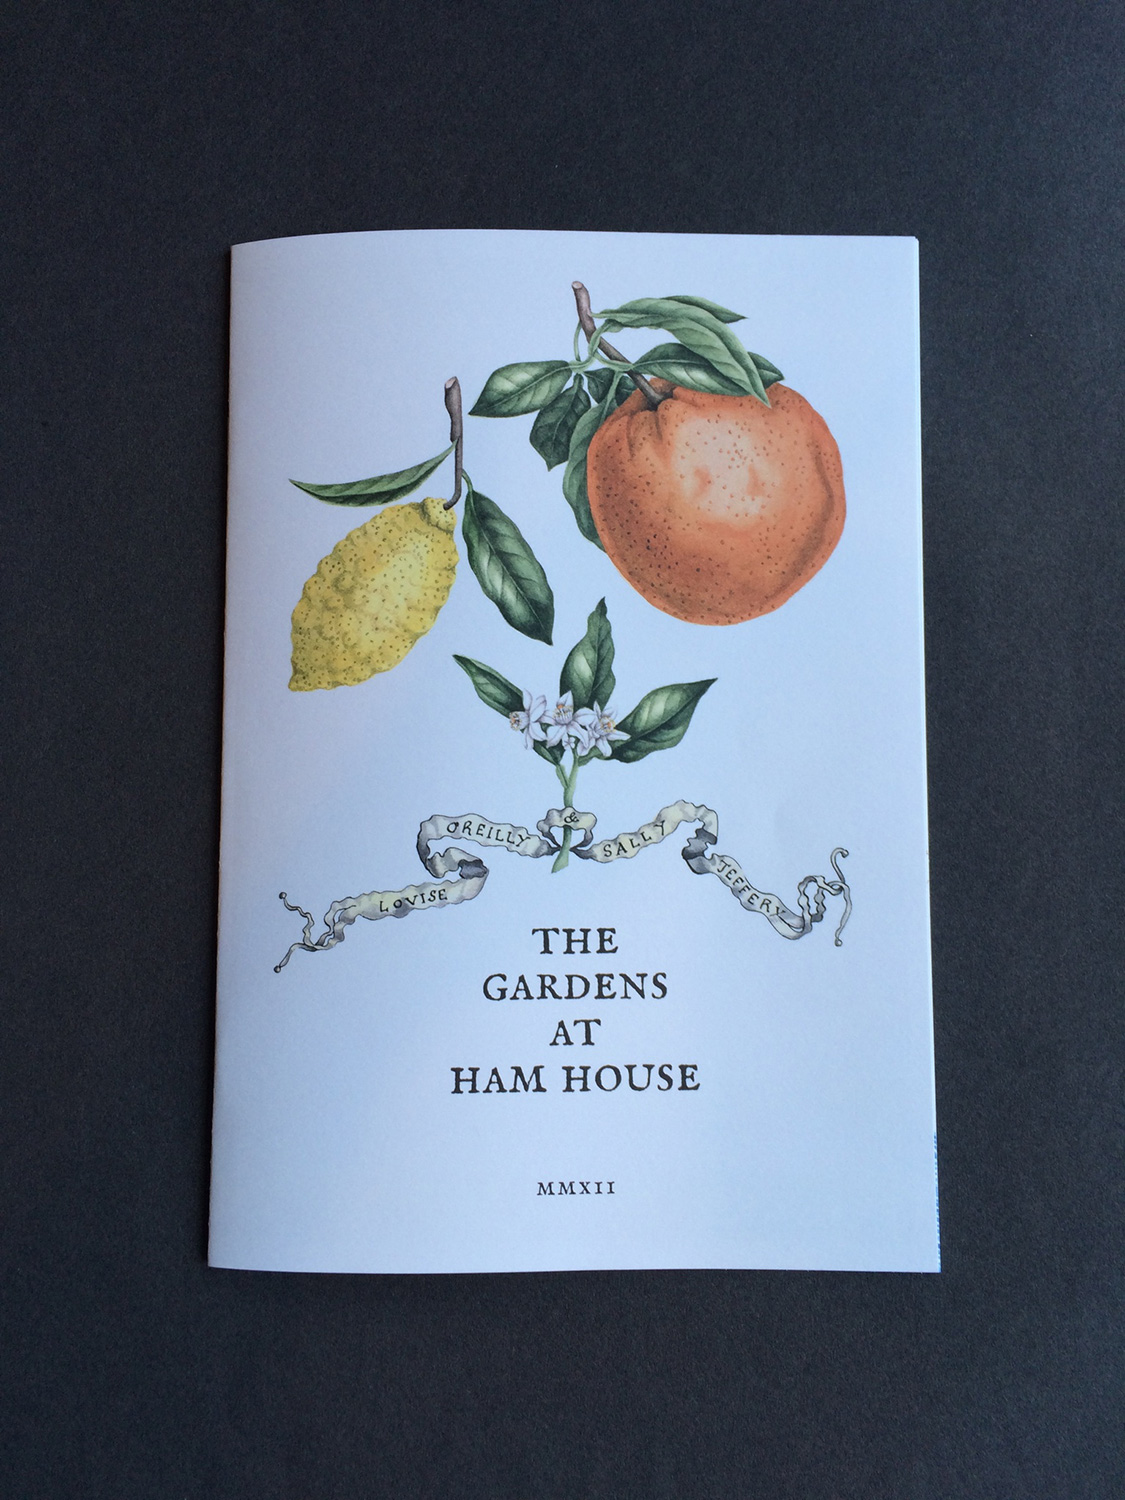 The Gardens at Ham House, 2012, front cover